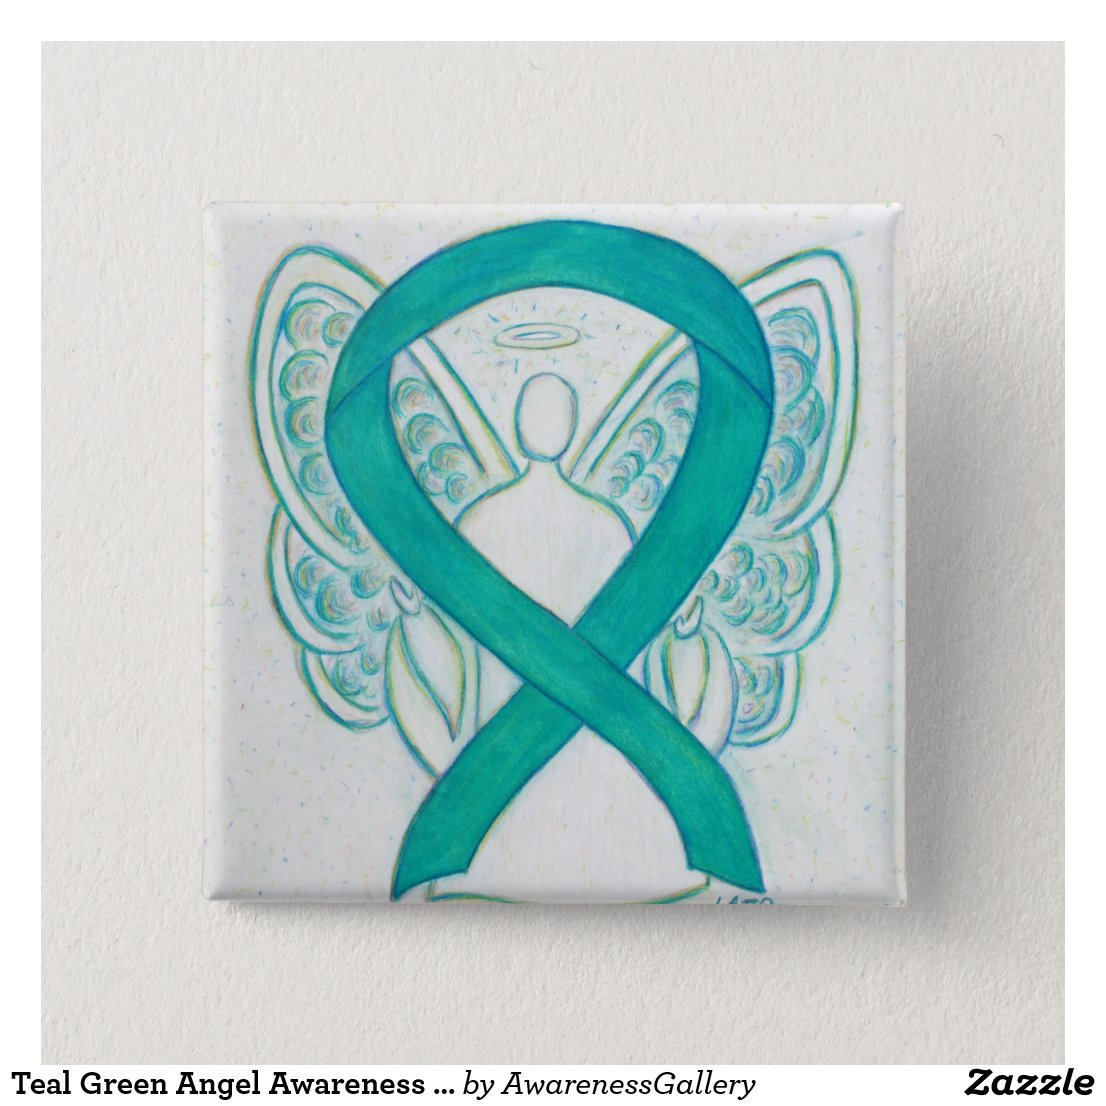 Teal Green Angel Awareness Ribbon Art Lapel Pin